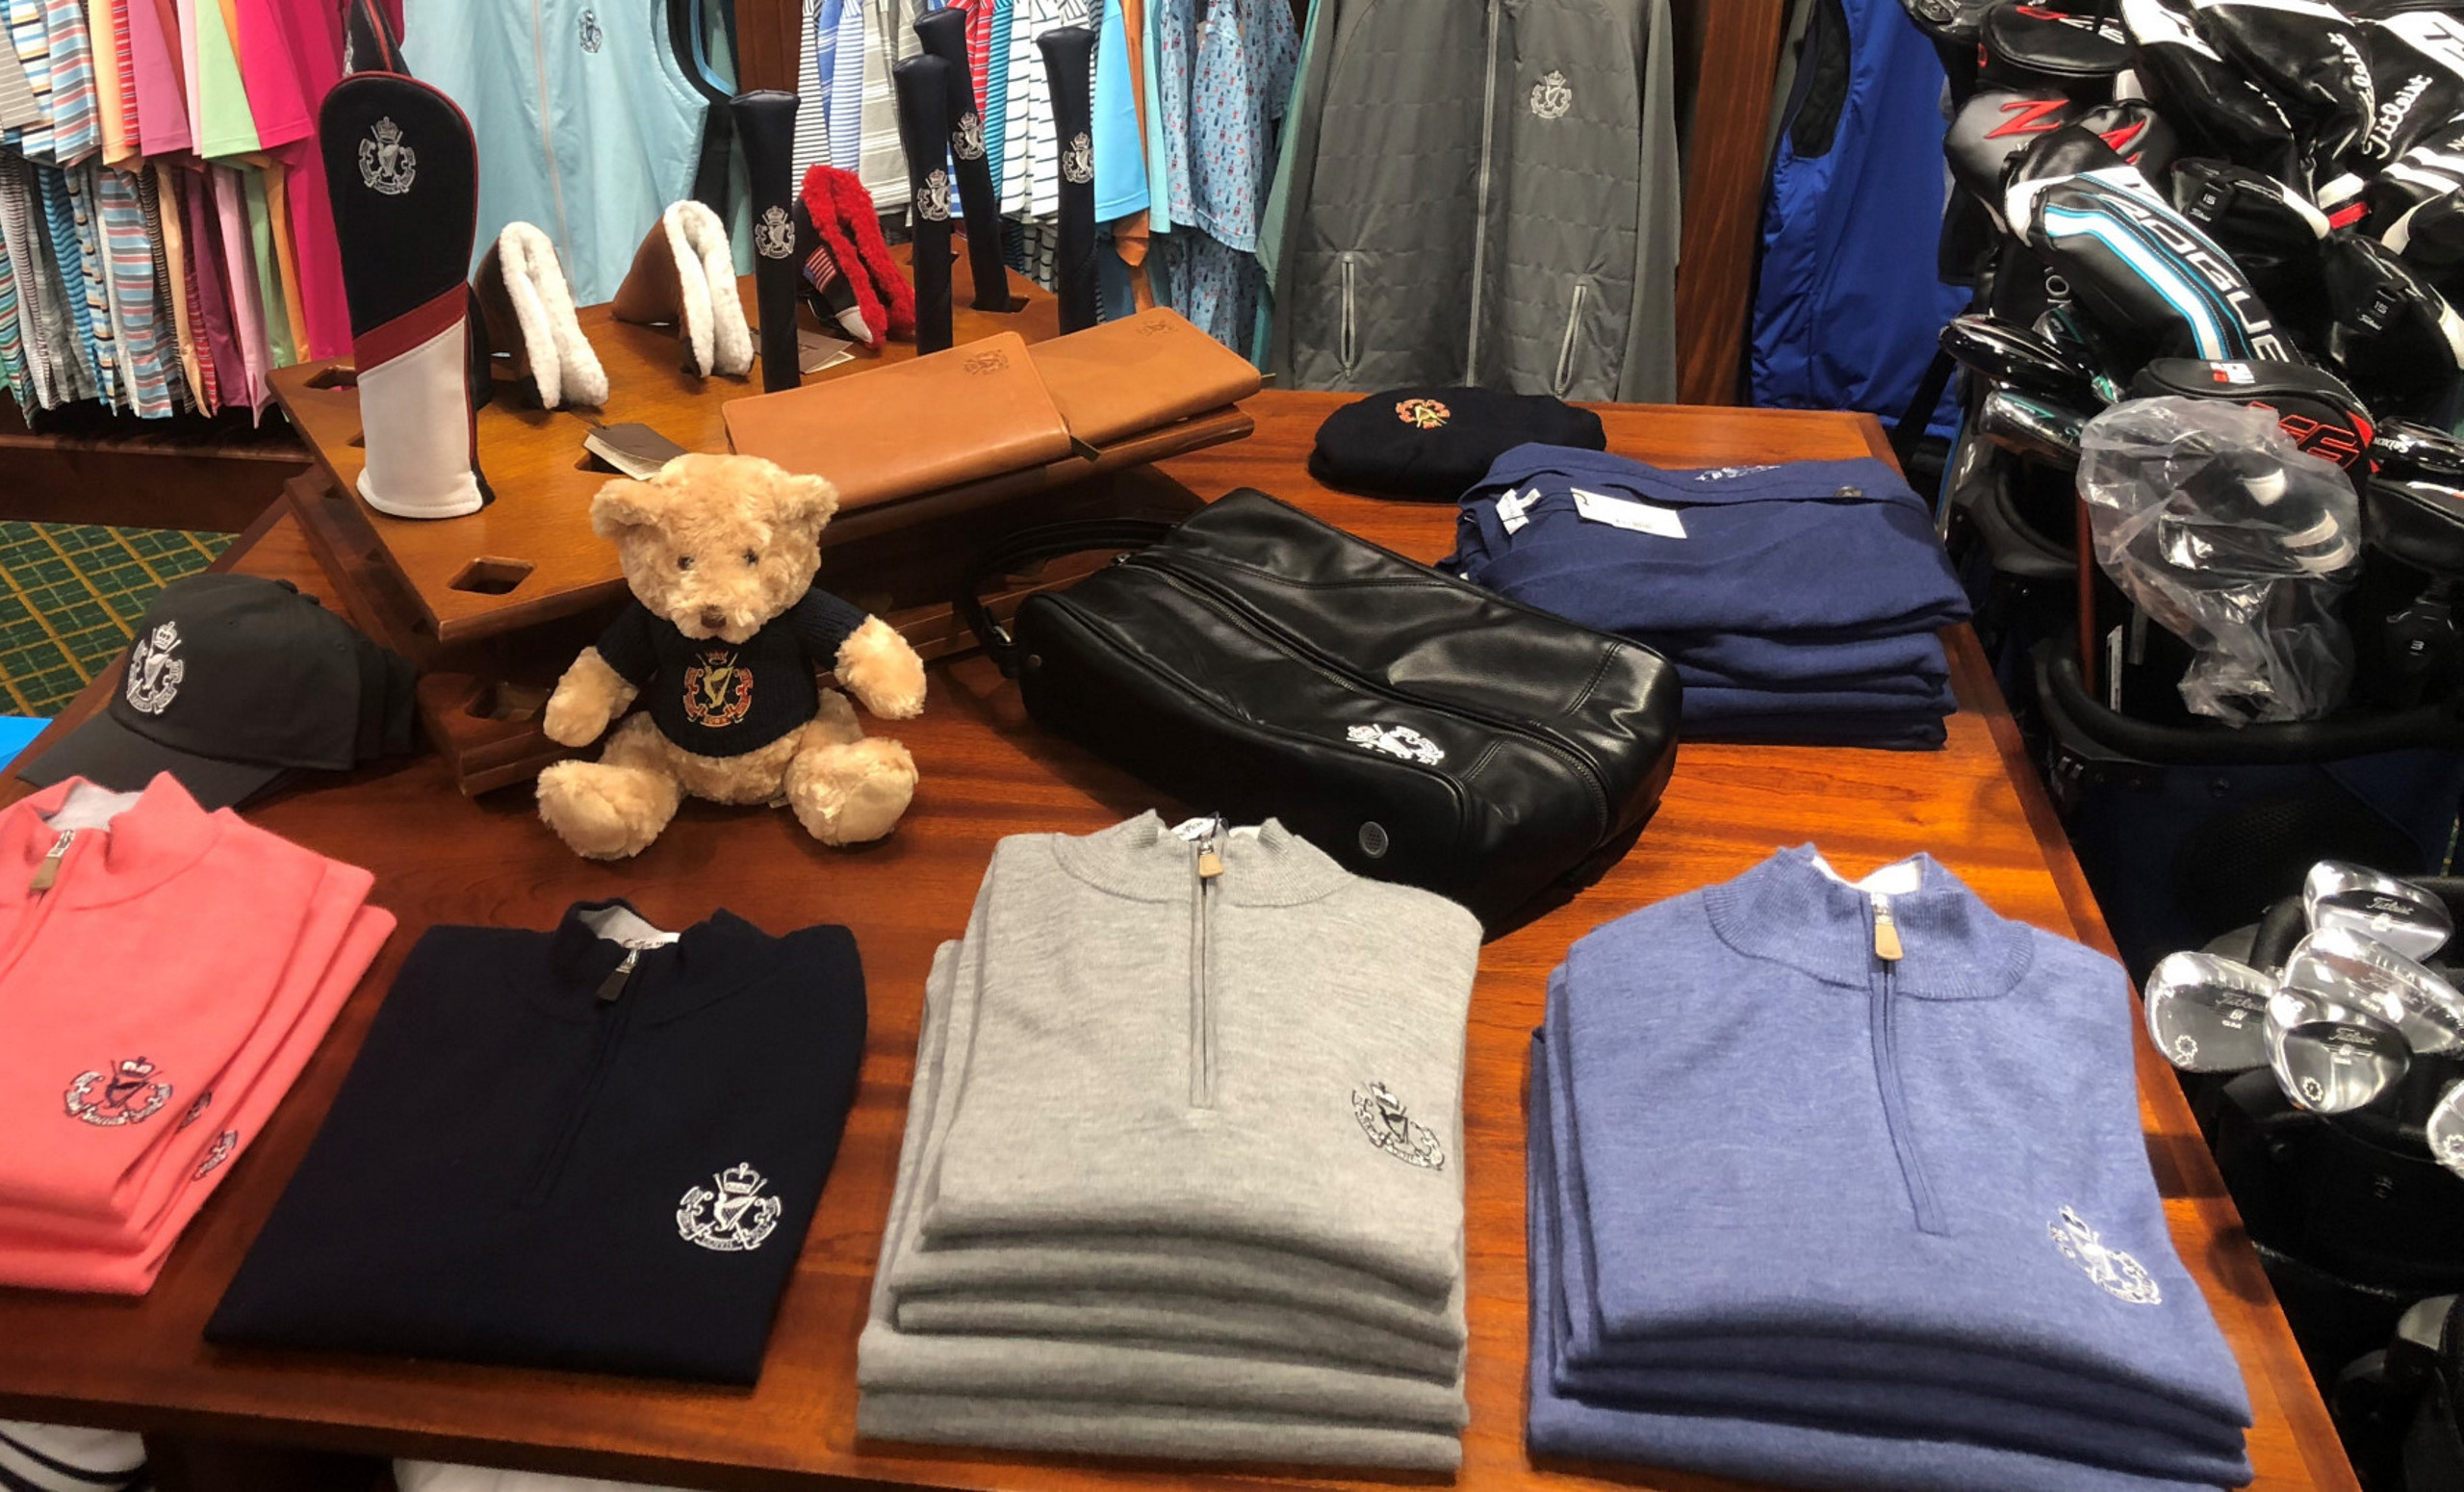 Royal County Down Pro Shop Golf clothing